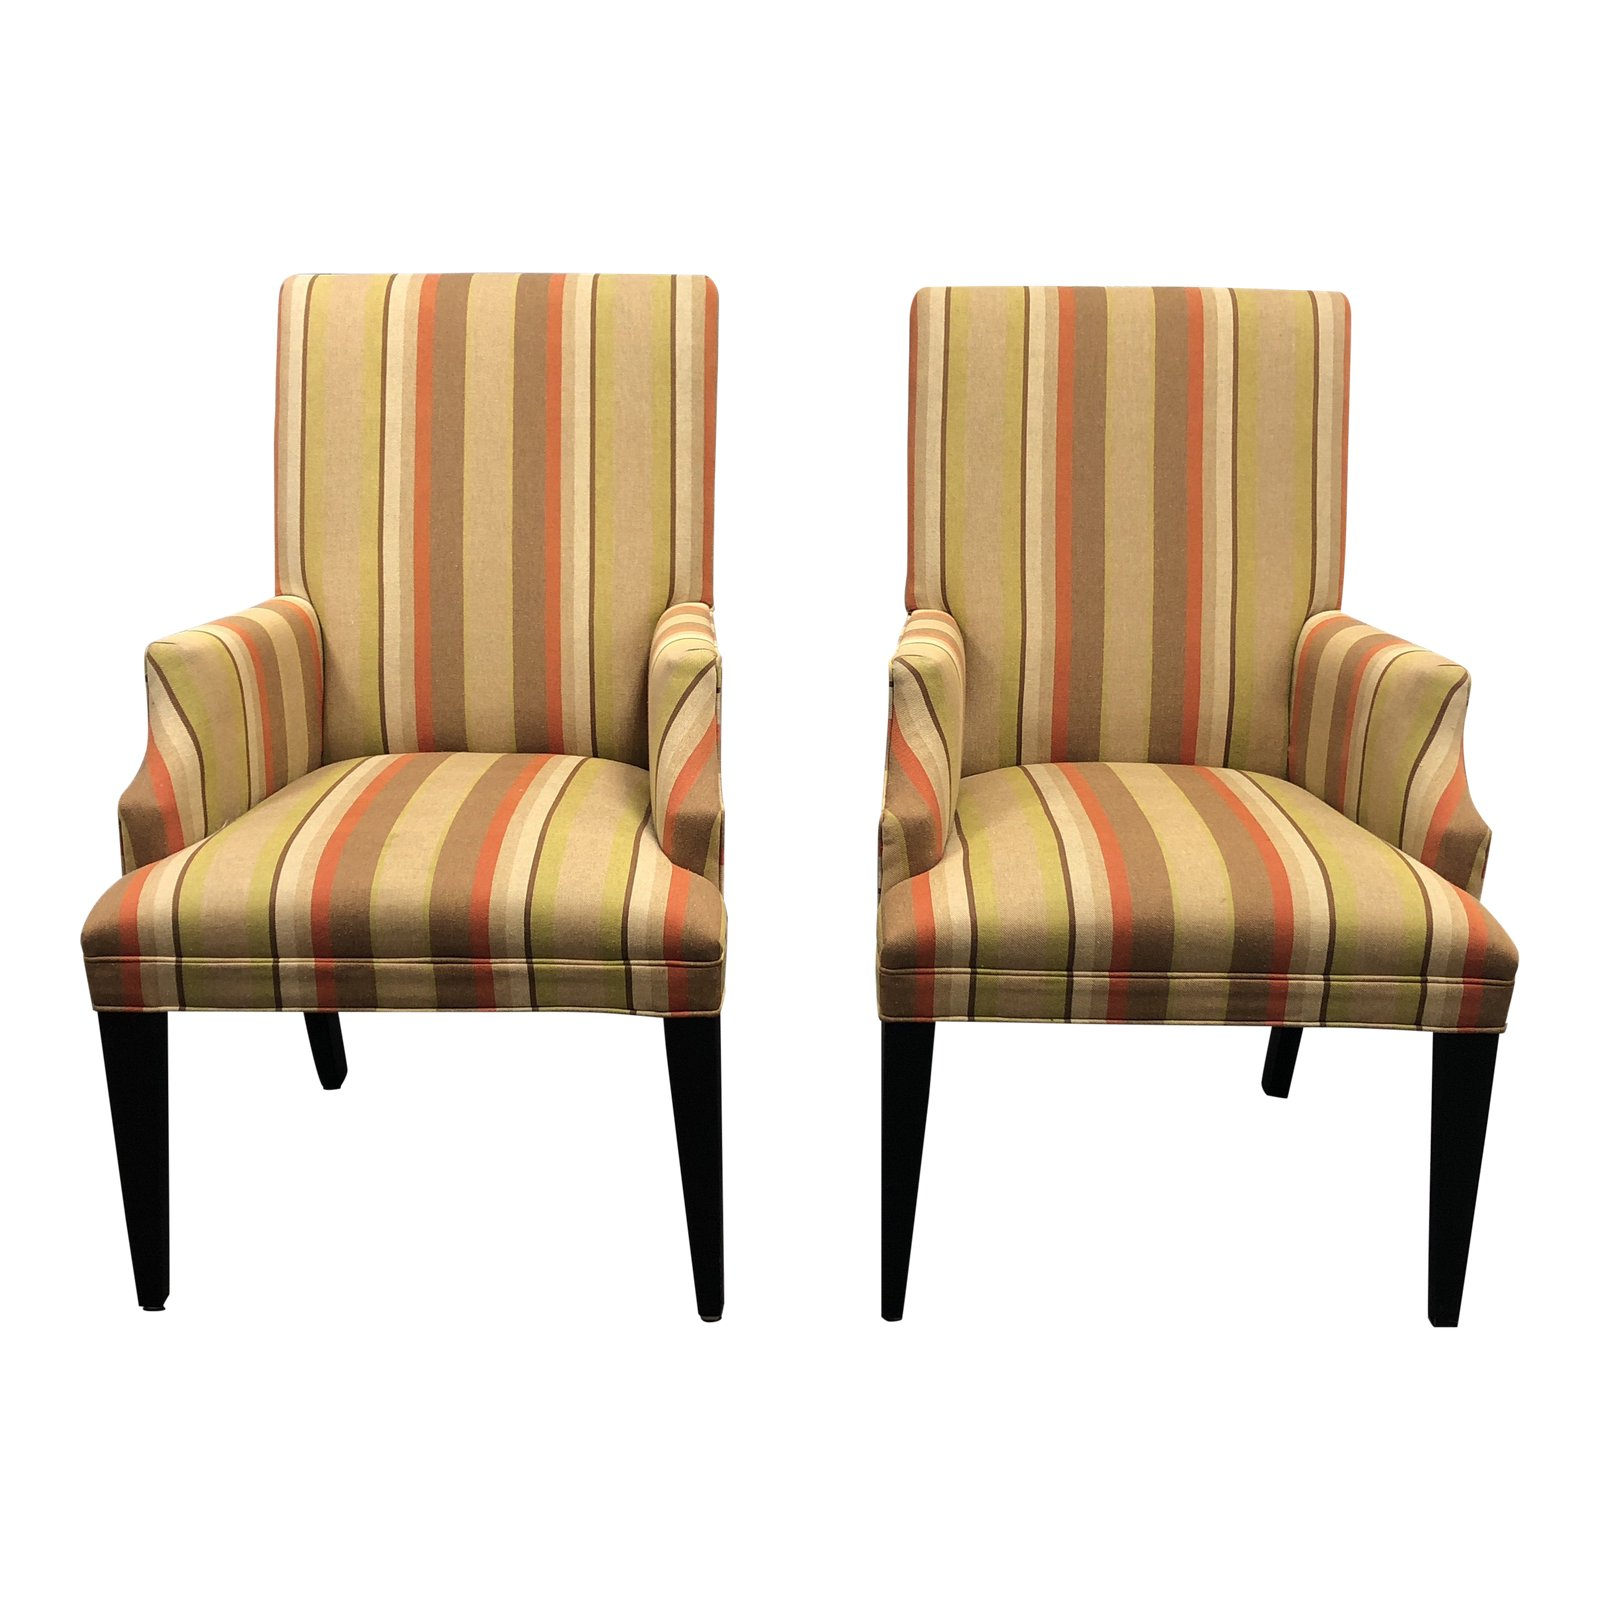 Mitchell Arm Sofa Chairs With Well Known Mitchell Gold + Bob Williams Striped Fabric Arm Chairs – A Pair (Gallery 1 of 20)